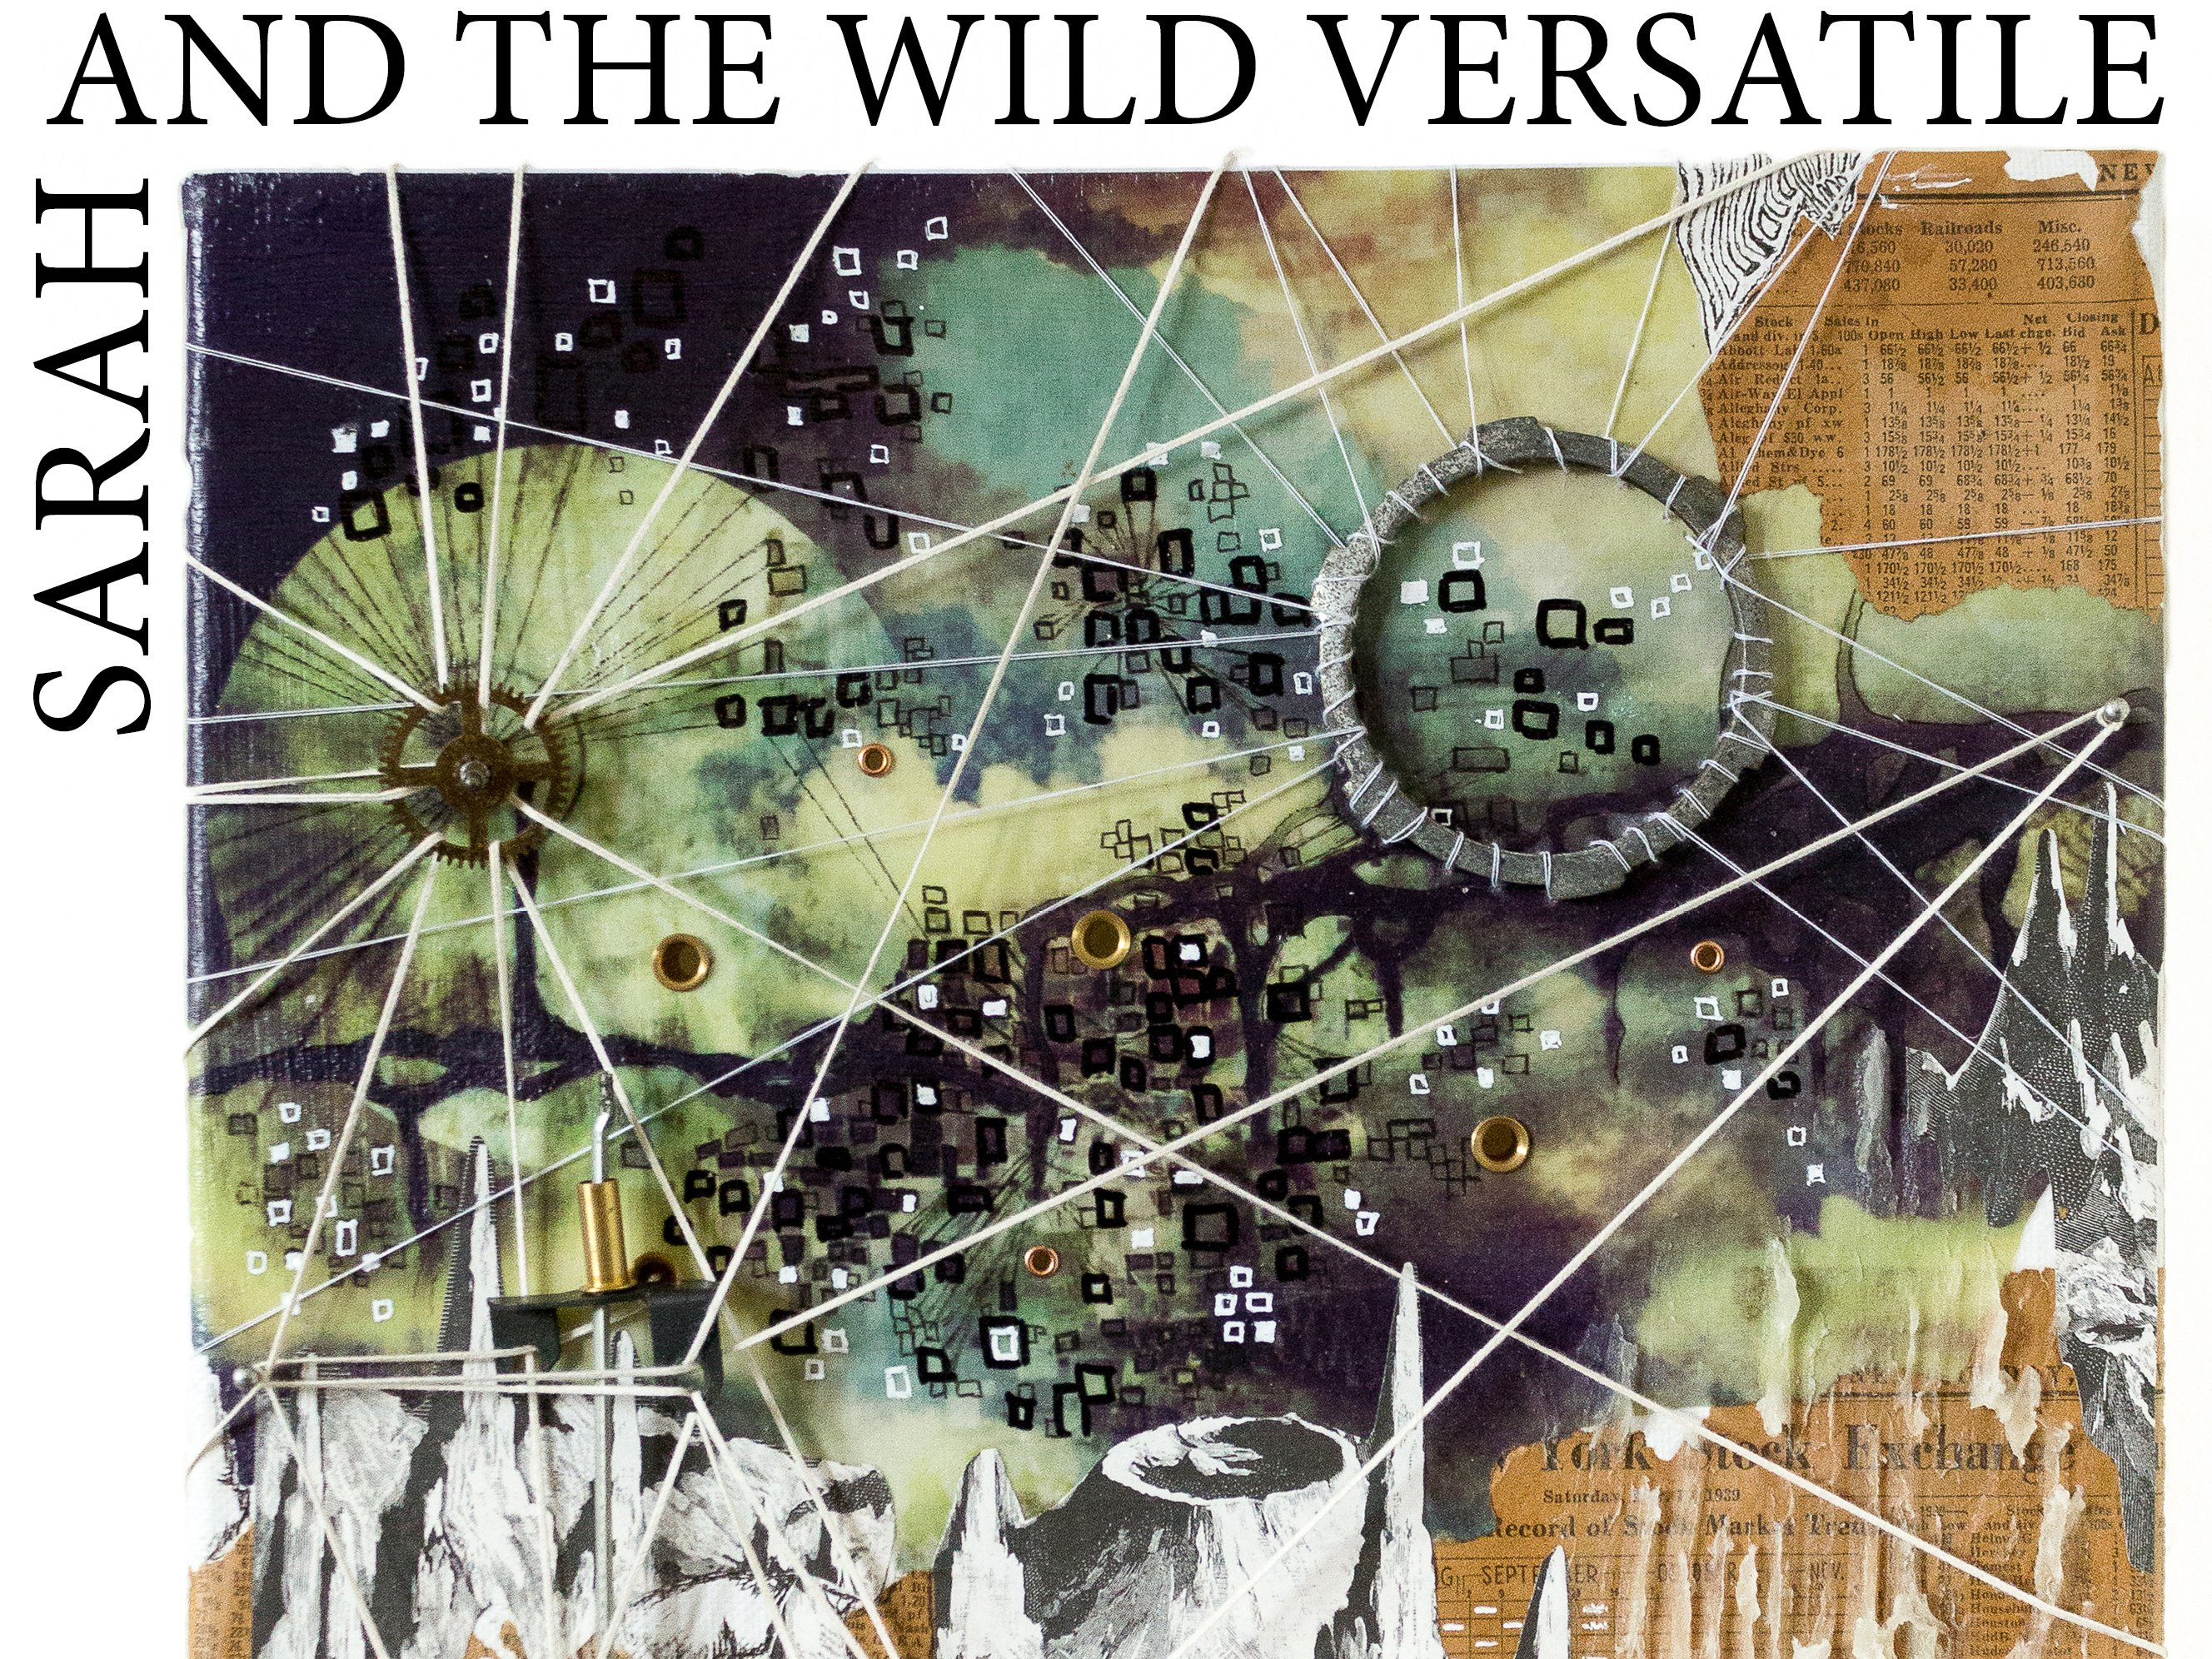 Image for Sarah & the Wild Versatile